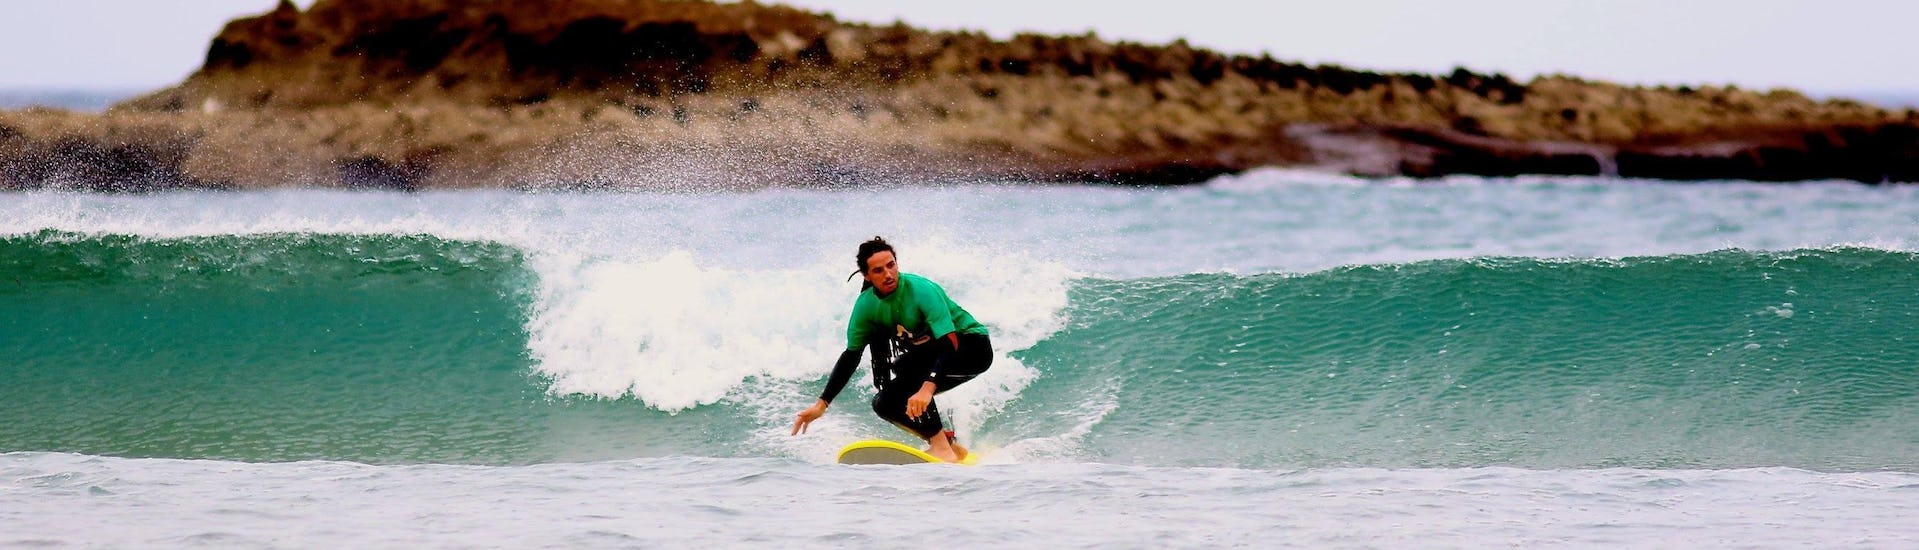 Private Surfing Lessons for Kids and Adults - All Levels